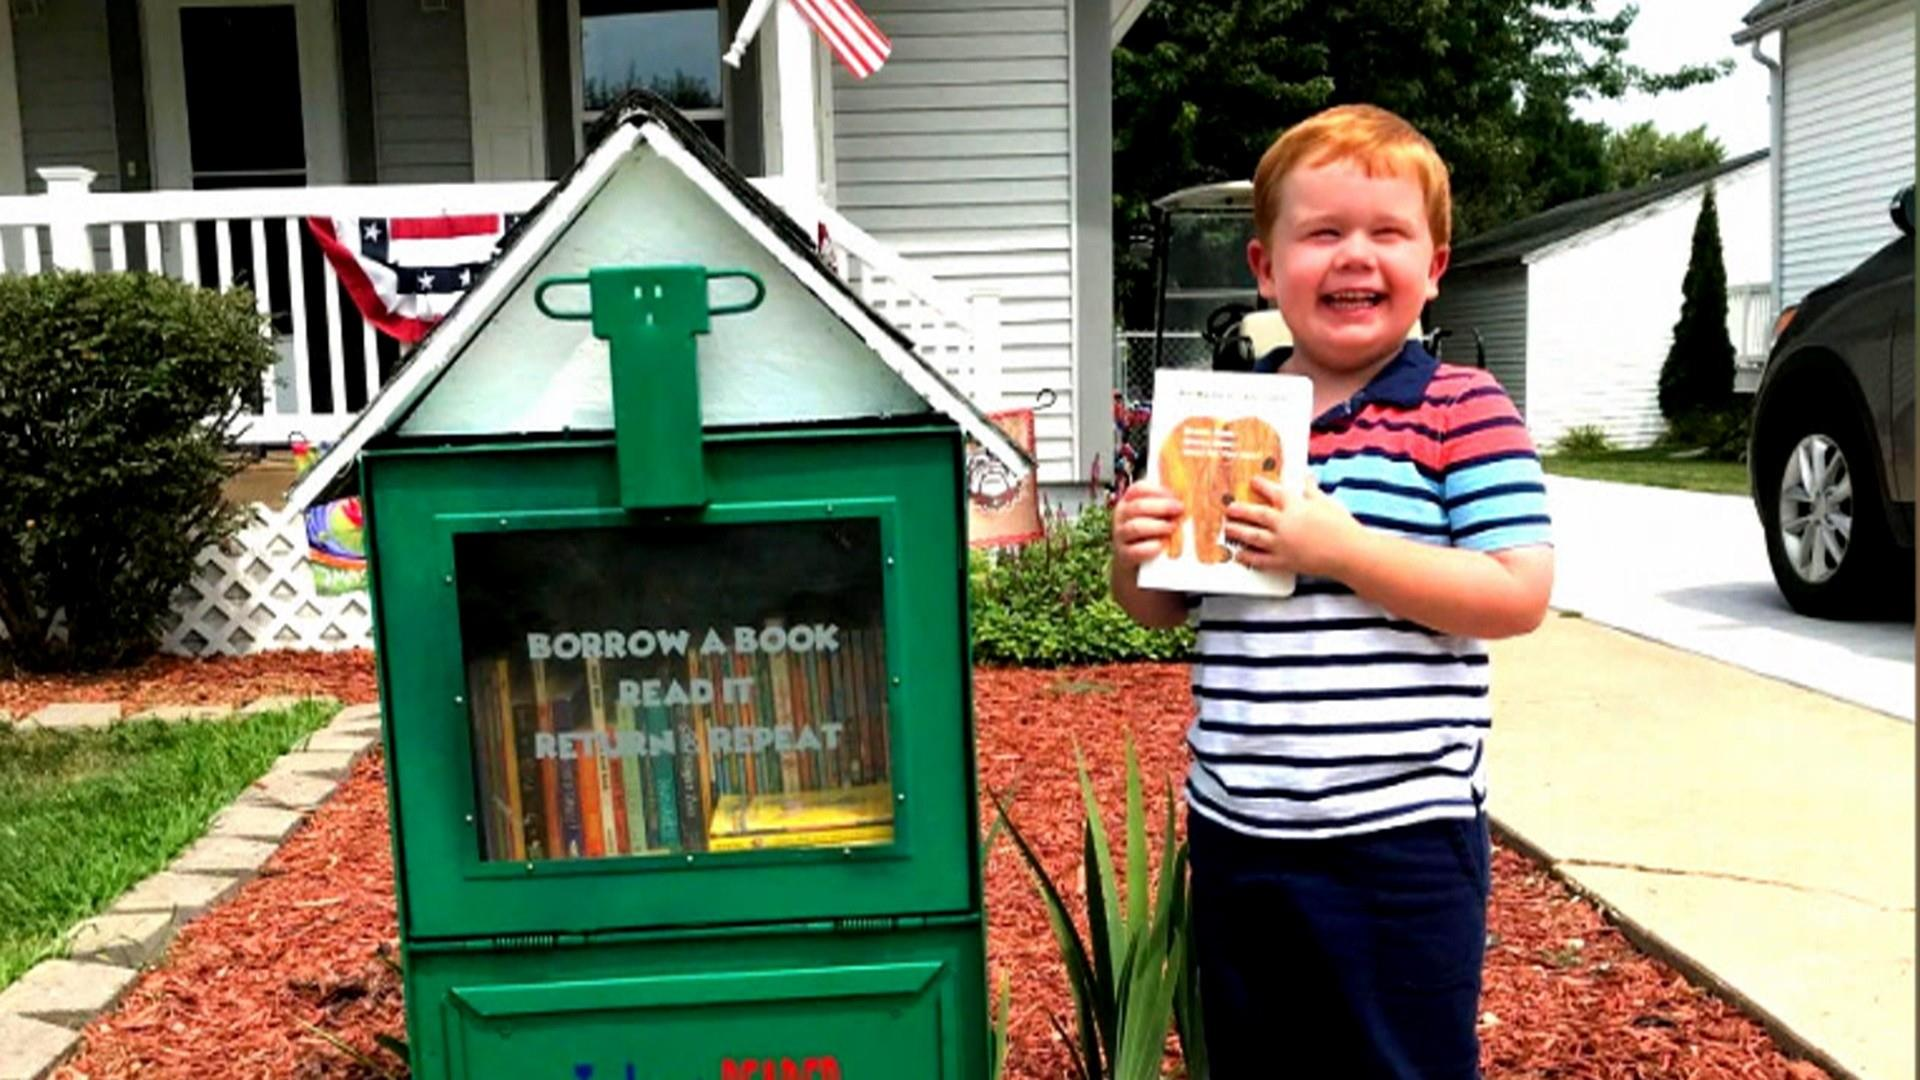 5-year-old's little library draws big crowds in his neighborhood